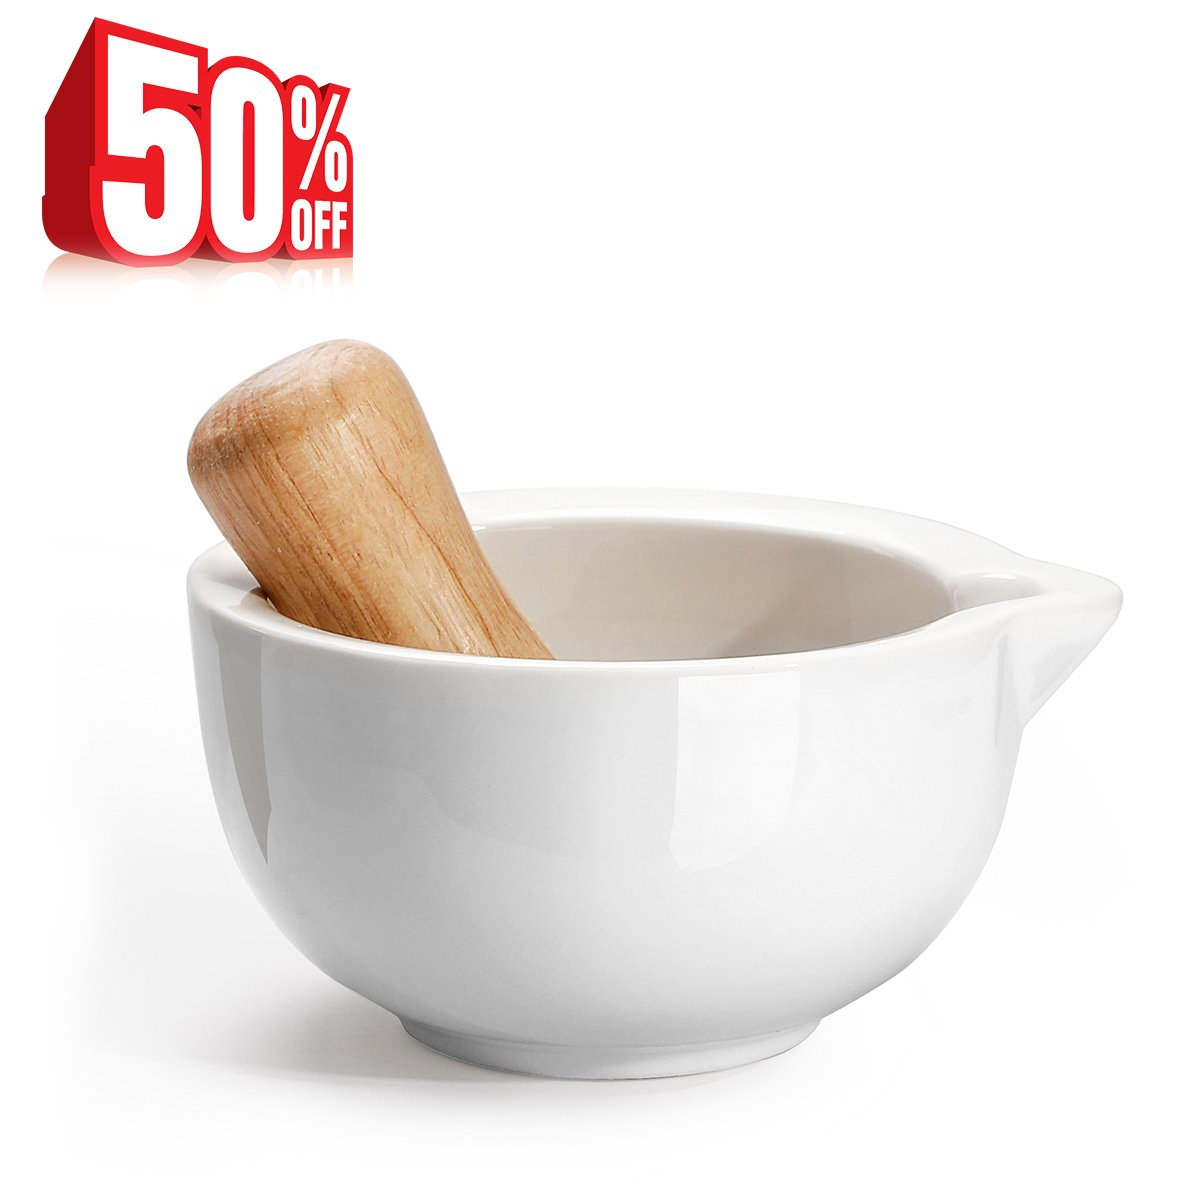 Amazon.com: Sweese 3603 Porcelain Mortar and Pestle Set, with Pour ... for Mortar And Pestle Chemistry  181plt